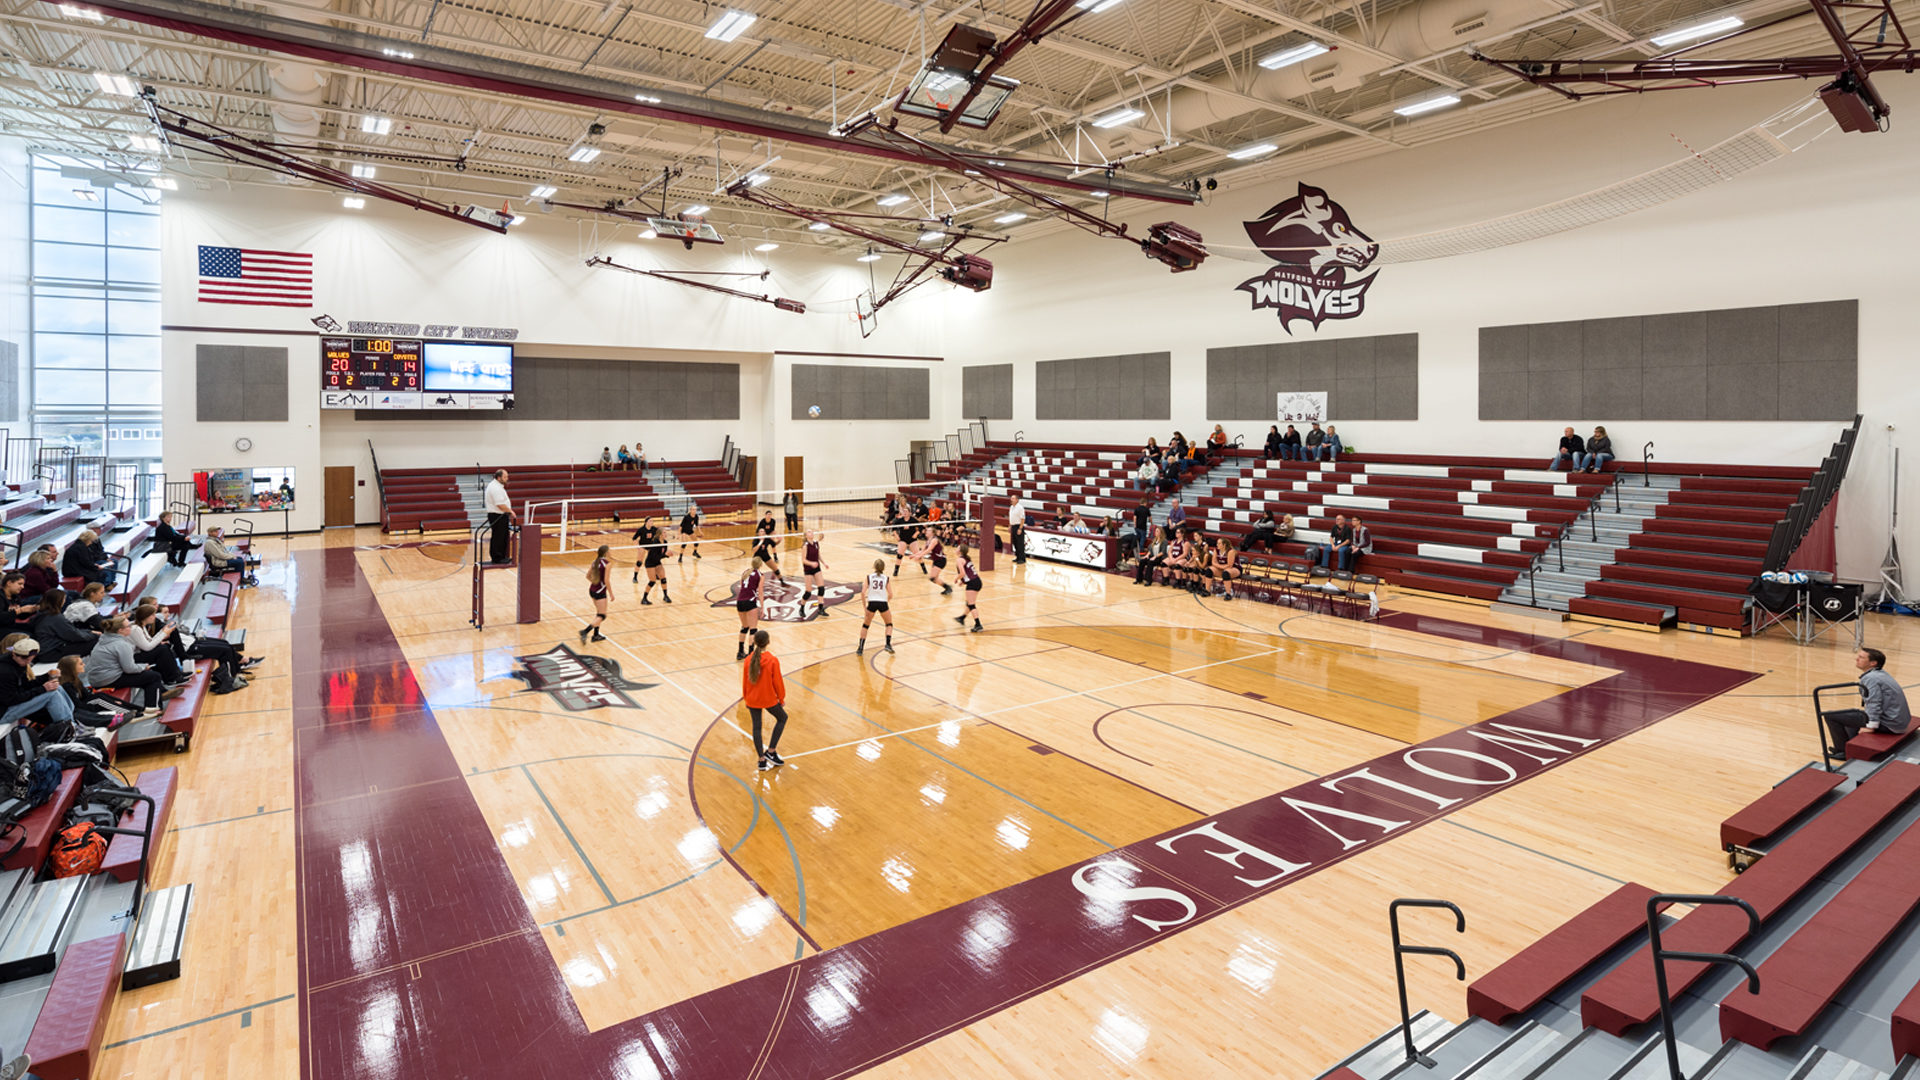 Watford City High School Watford City ND Gymnasium Girls Playing Volleyball